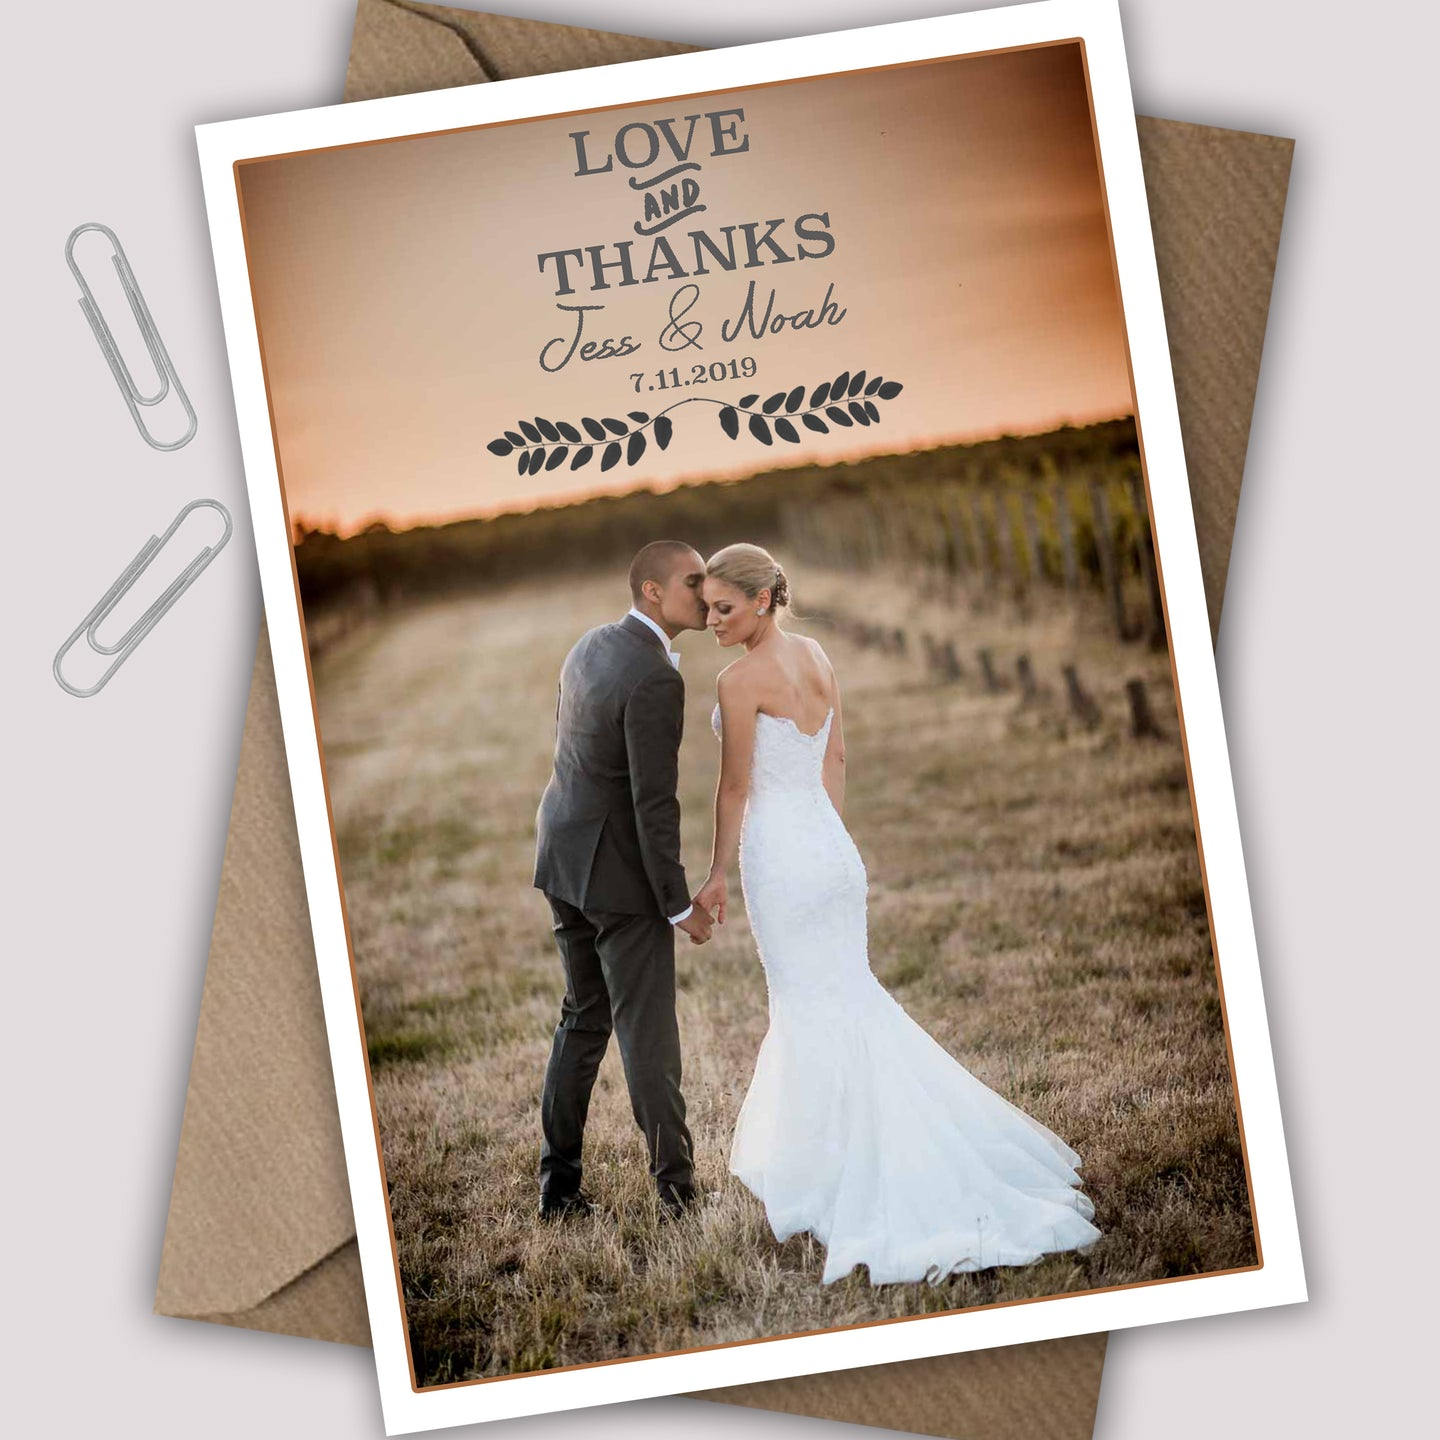 Love And Thanks Single Photo Wedding Thank You Cards - CLCDesigns